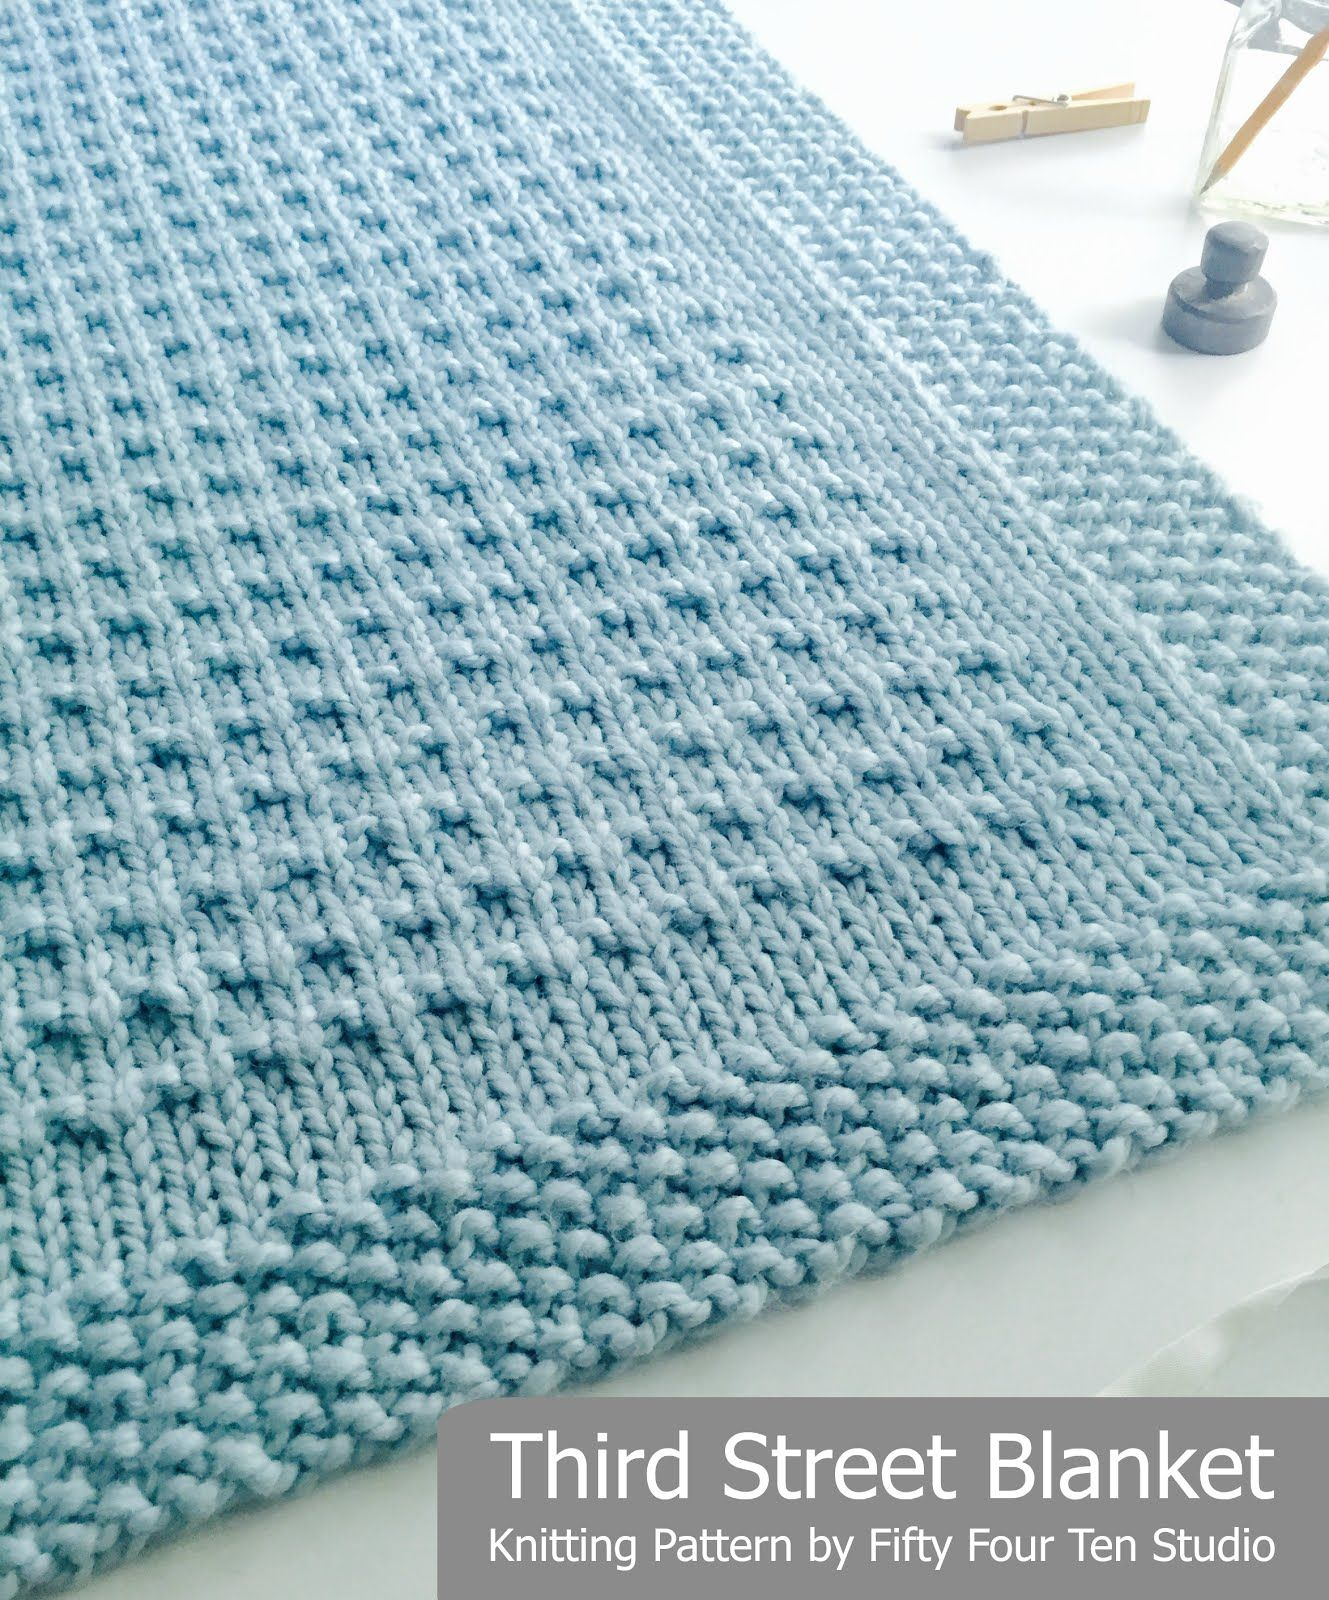 Third Street Blanket knitting pattern by Fifty Four Ten Studio. Knit with sup...